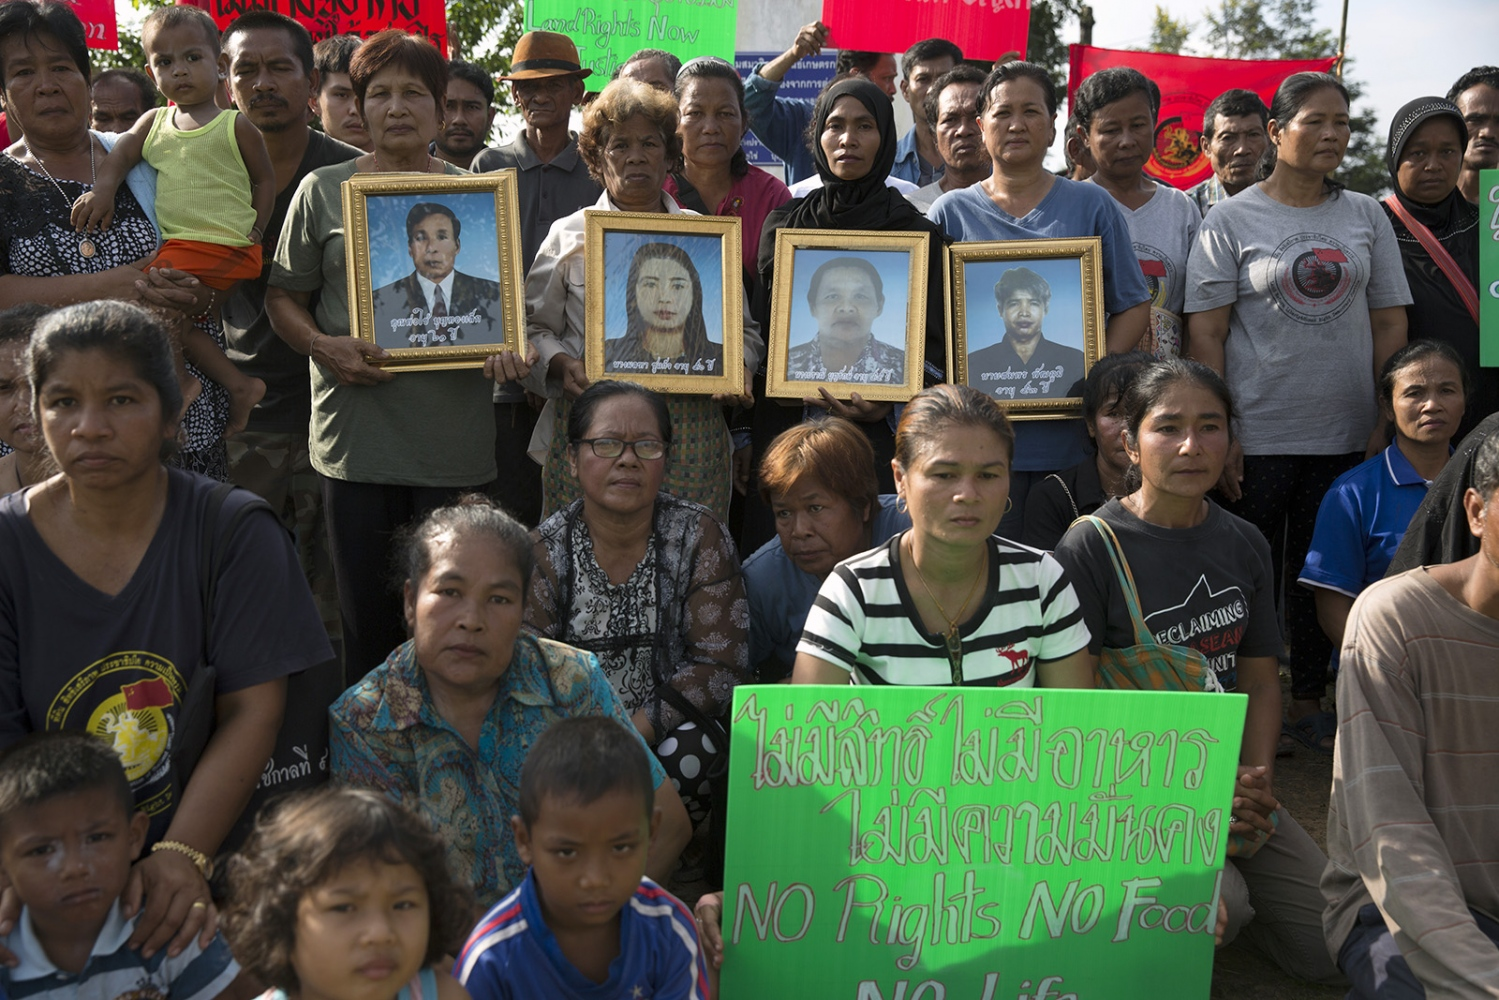 Members of Klong Sai Pattana community, as well as members of other villages in a similar situation, gather for a group photograph during their annual memorial day. Events such as this help the communities cope with their situations by eliminating the feeling that they are not alone in the struggle. They hold pictures of the 4 people killed during their prolonged struggle against a palm oil company. The framed photo seen in the photograph shows the first victim called Somporn Pattaphum who was shot dead on 11 January 2010 a few hundred meters away from where they now sit. December 2016.